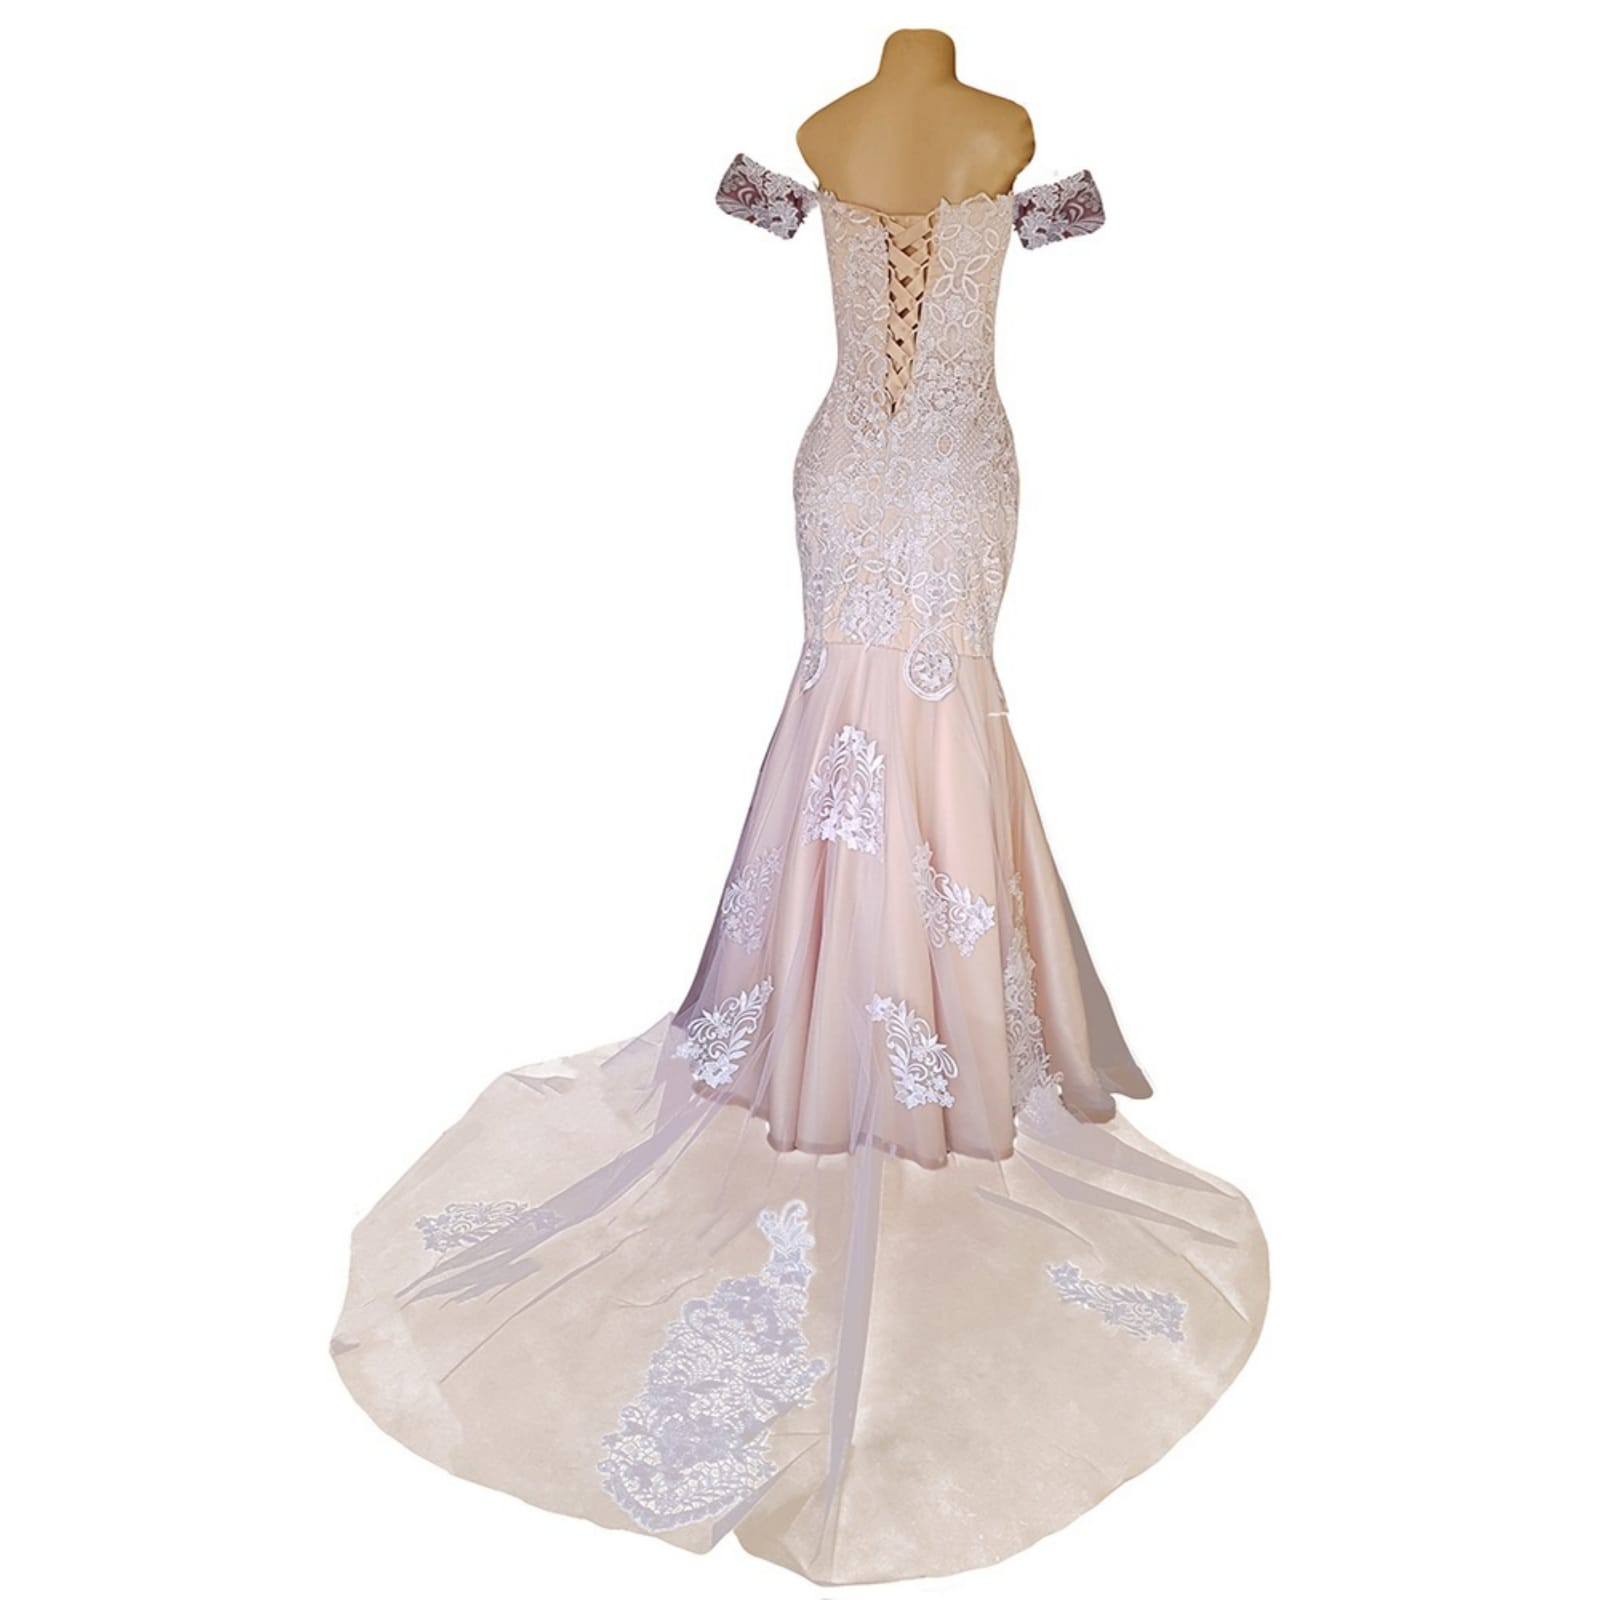 White lace and pinky peach mermaid wedding dress 5 pale peach and white soft mermaid wedding dress with a lace-up open back and off-shoulder strap sleeve. With a sheer train detailed with lace.